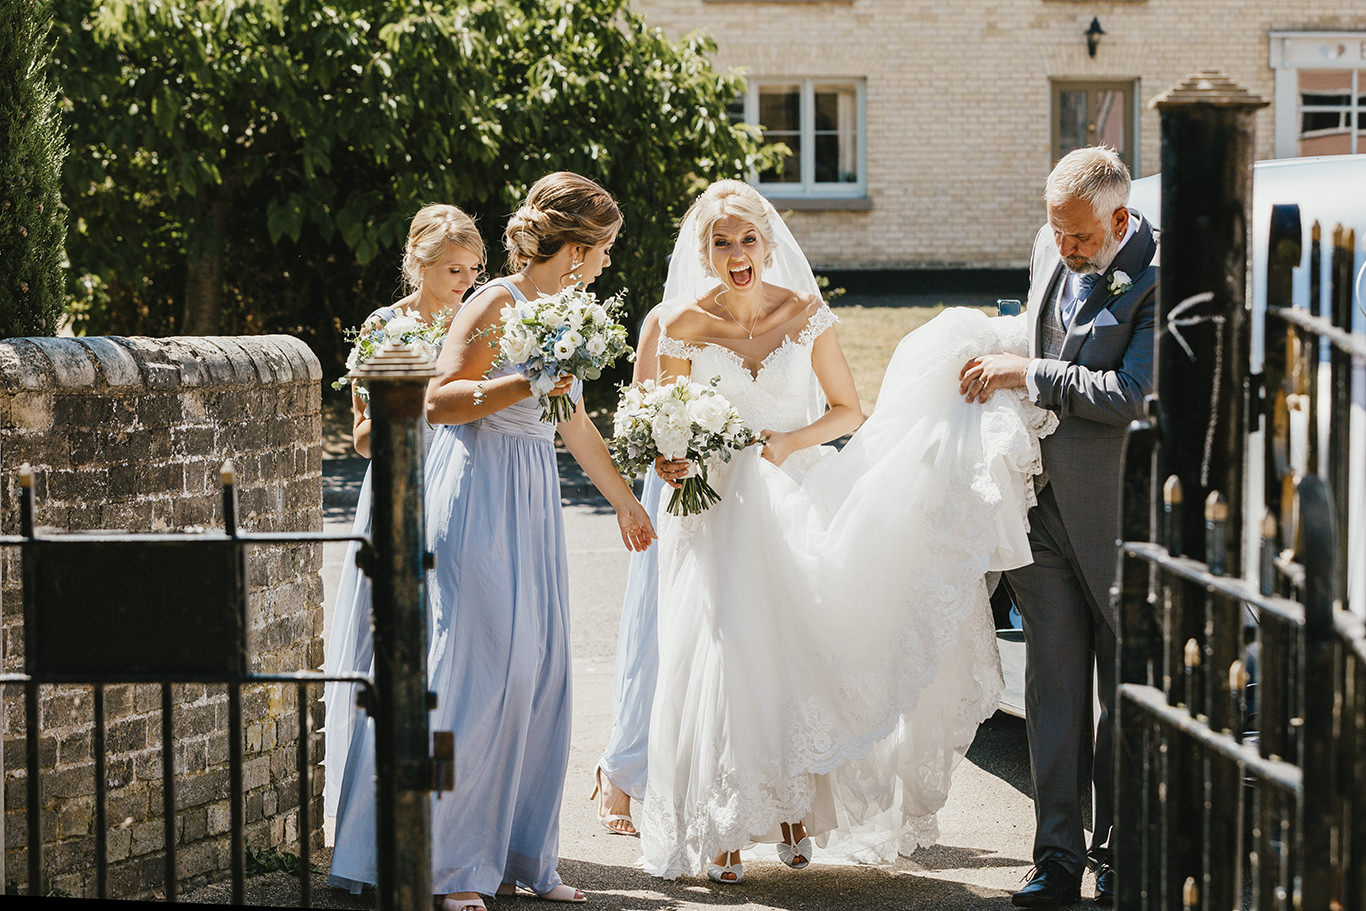 Wedding Photography by Liz Greenhalgh Photography